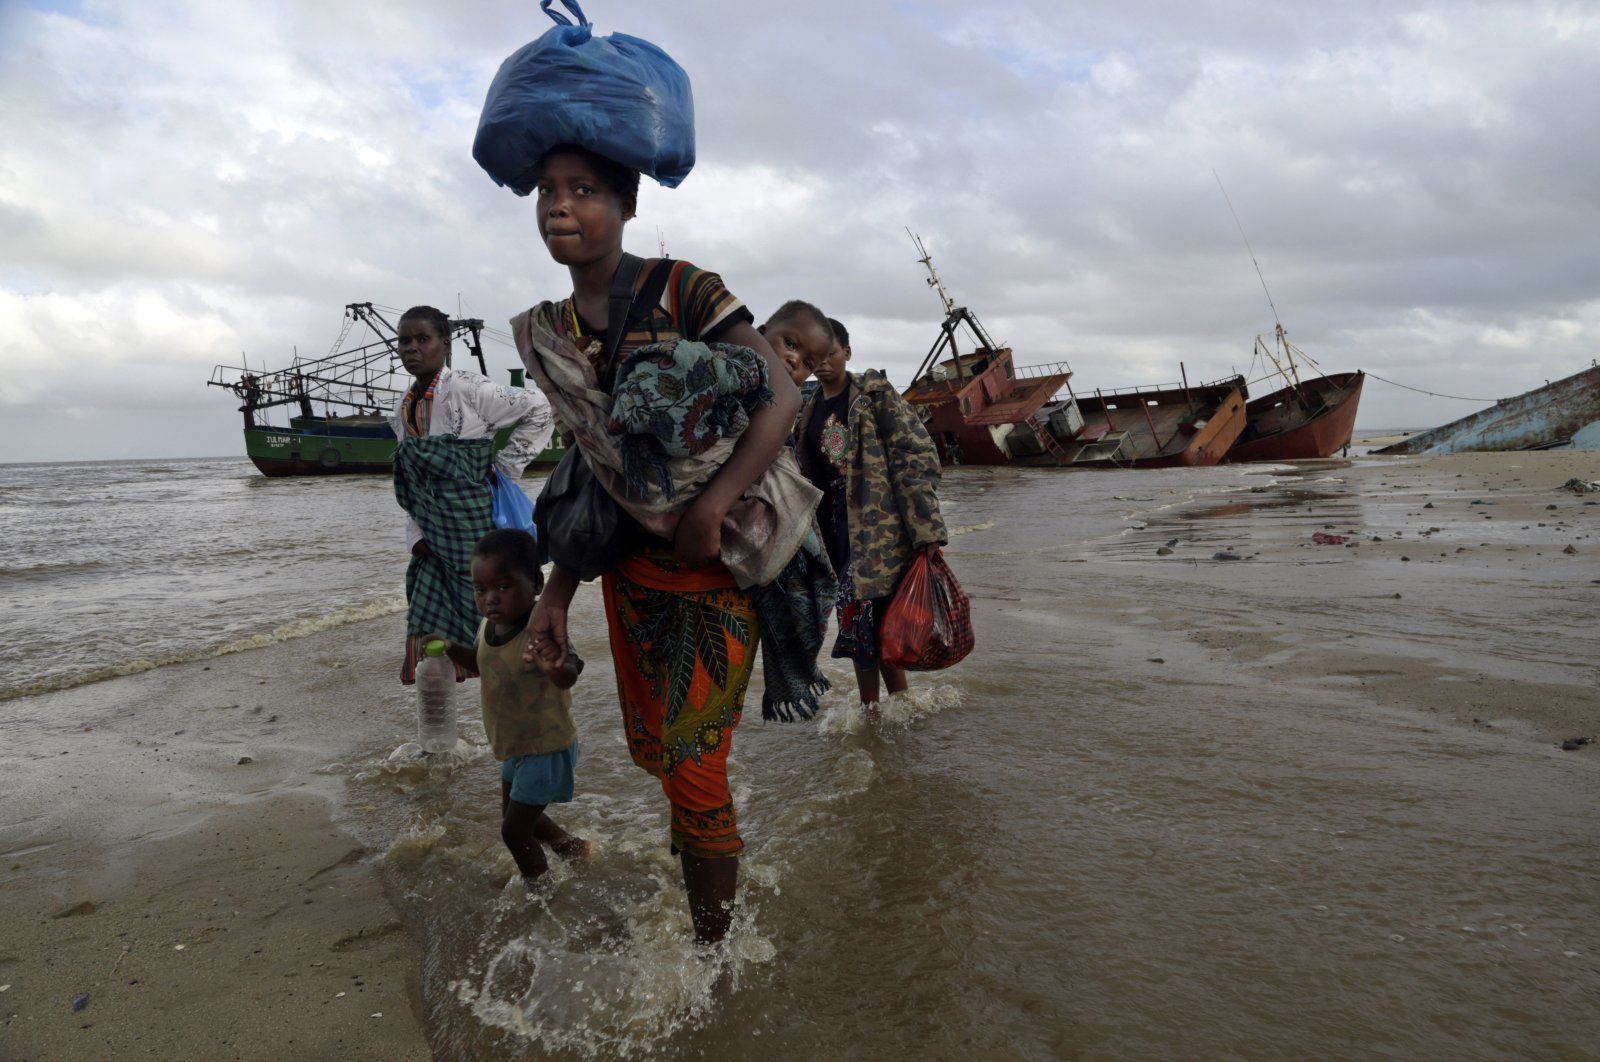 Displaced families arrive after being rescued by boat from a flooded area of Buzi district, 200 kilometers (120 miles) outside Beira, Mozambique, March 23, 2019. (AP Photo)